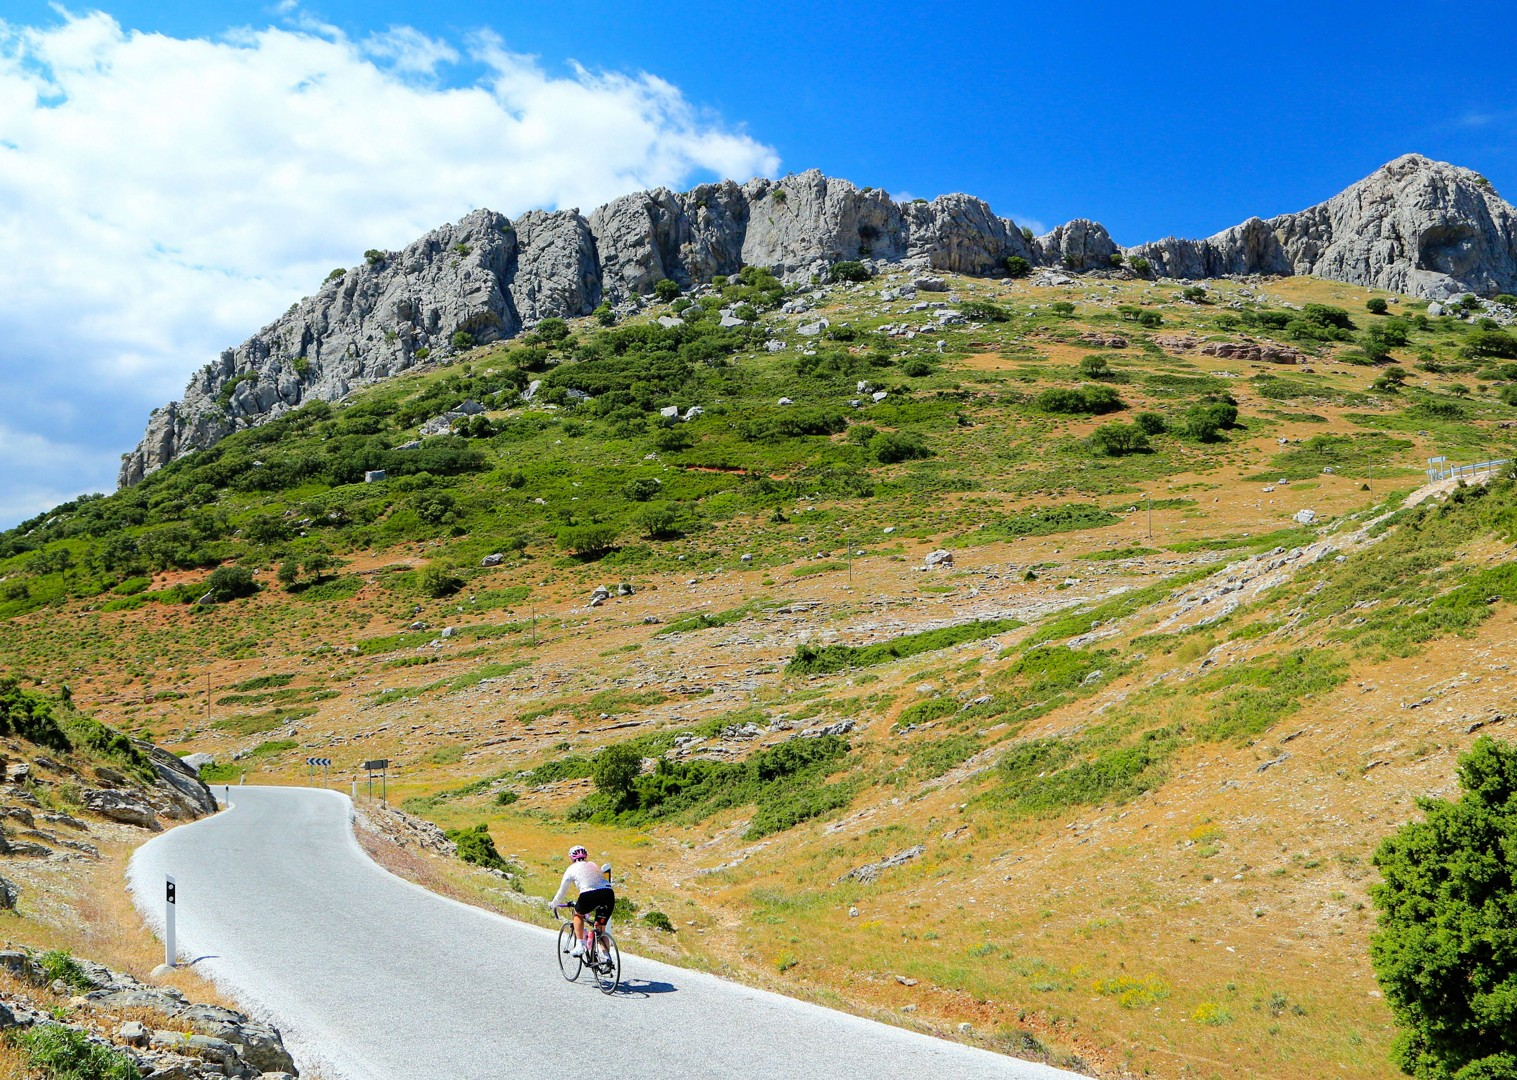 road-cycling-in-basque-country-to-andalucia.jpg - Spain - Basque Country to Andalucia - North to South - 16 Day - Guided Road Cycling Holiday - Road Cycling